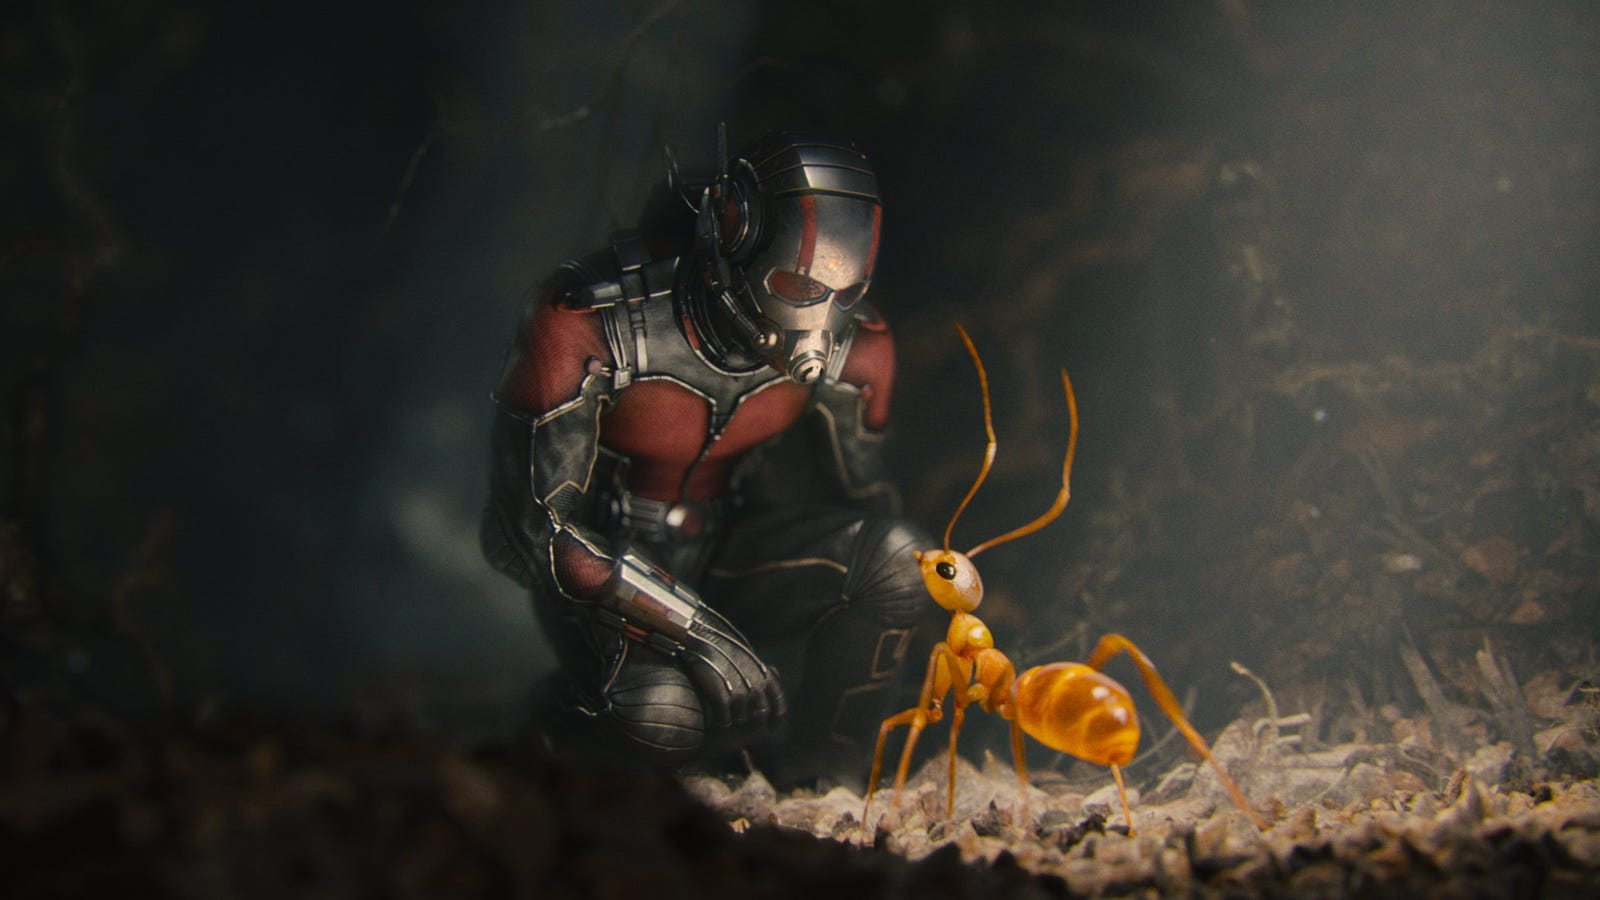 Paul Rudd's Ant-Man and the Wasp Stunt Double Is a Badass Amputee